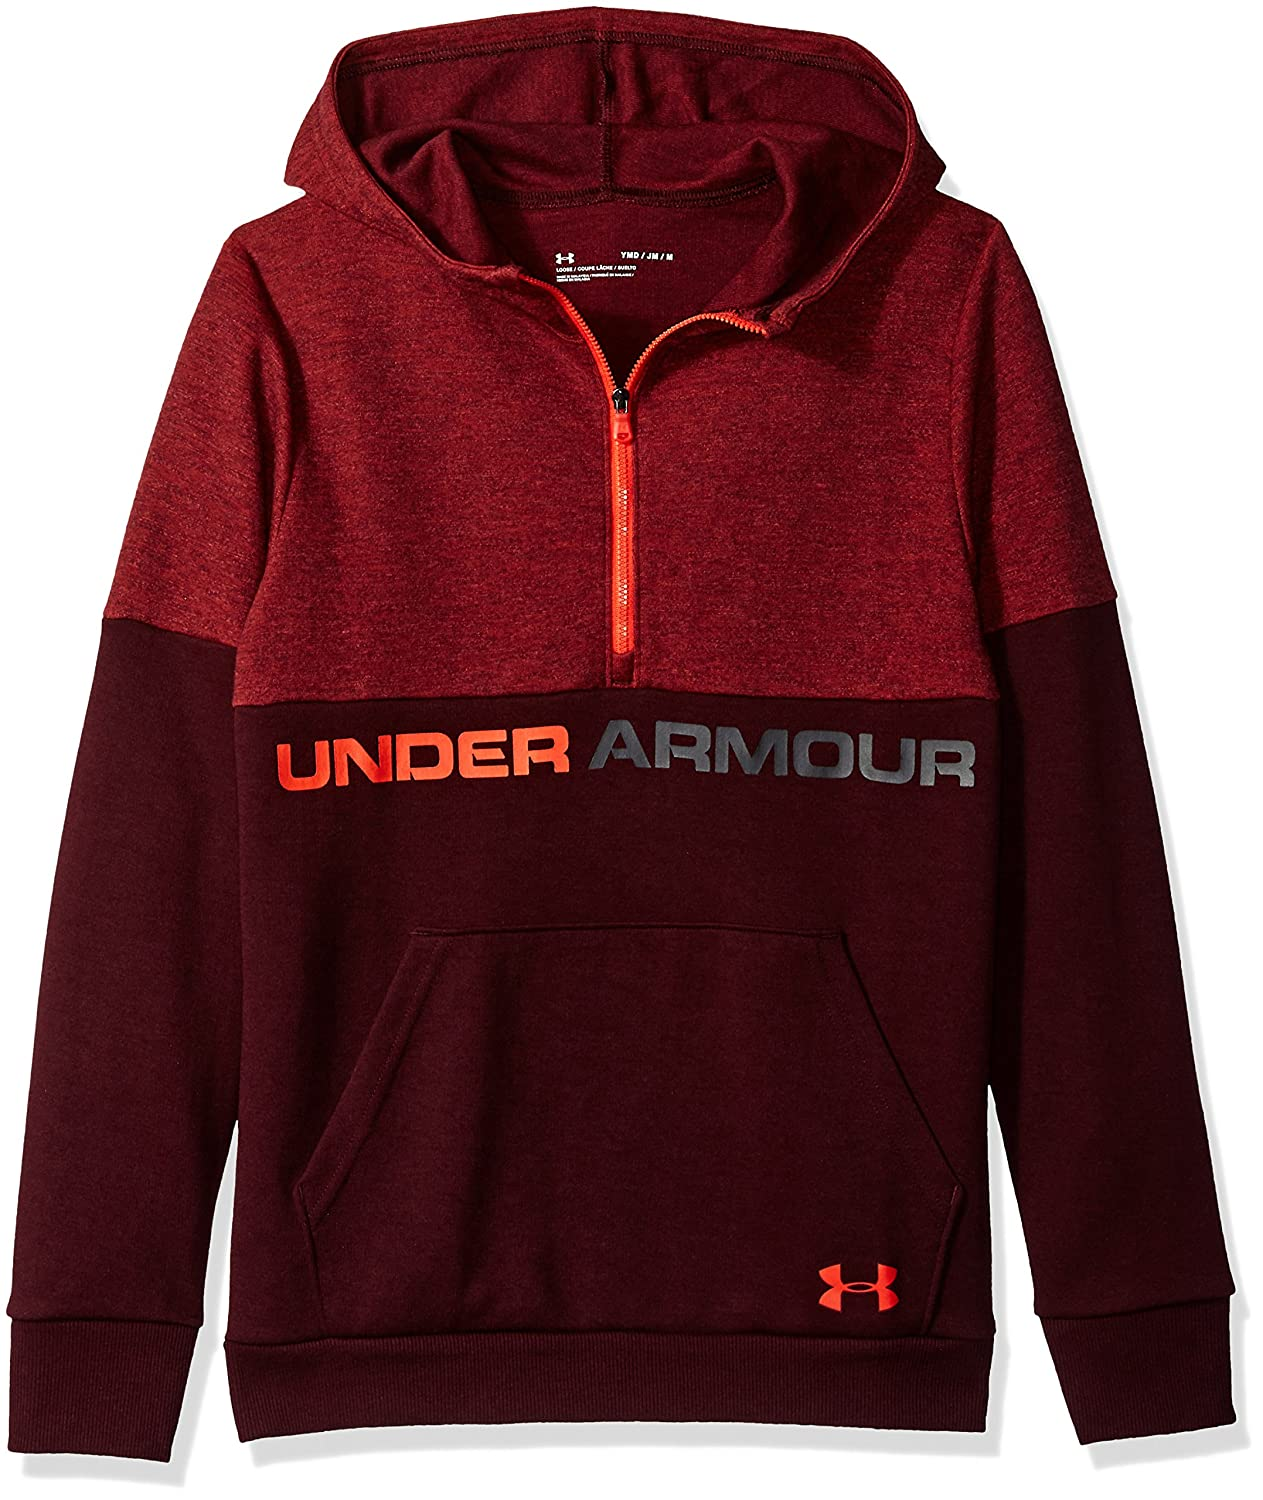 Under Armour Boys Double Knit 1/2 Zip Hoodie Under Armour Apparel 1318235